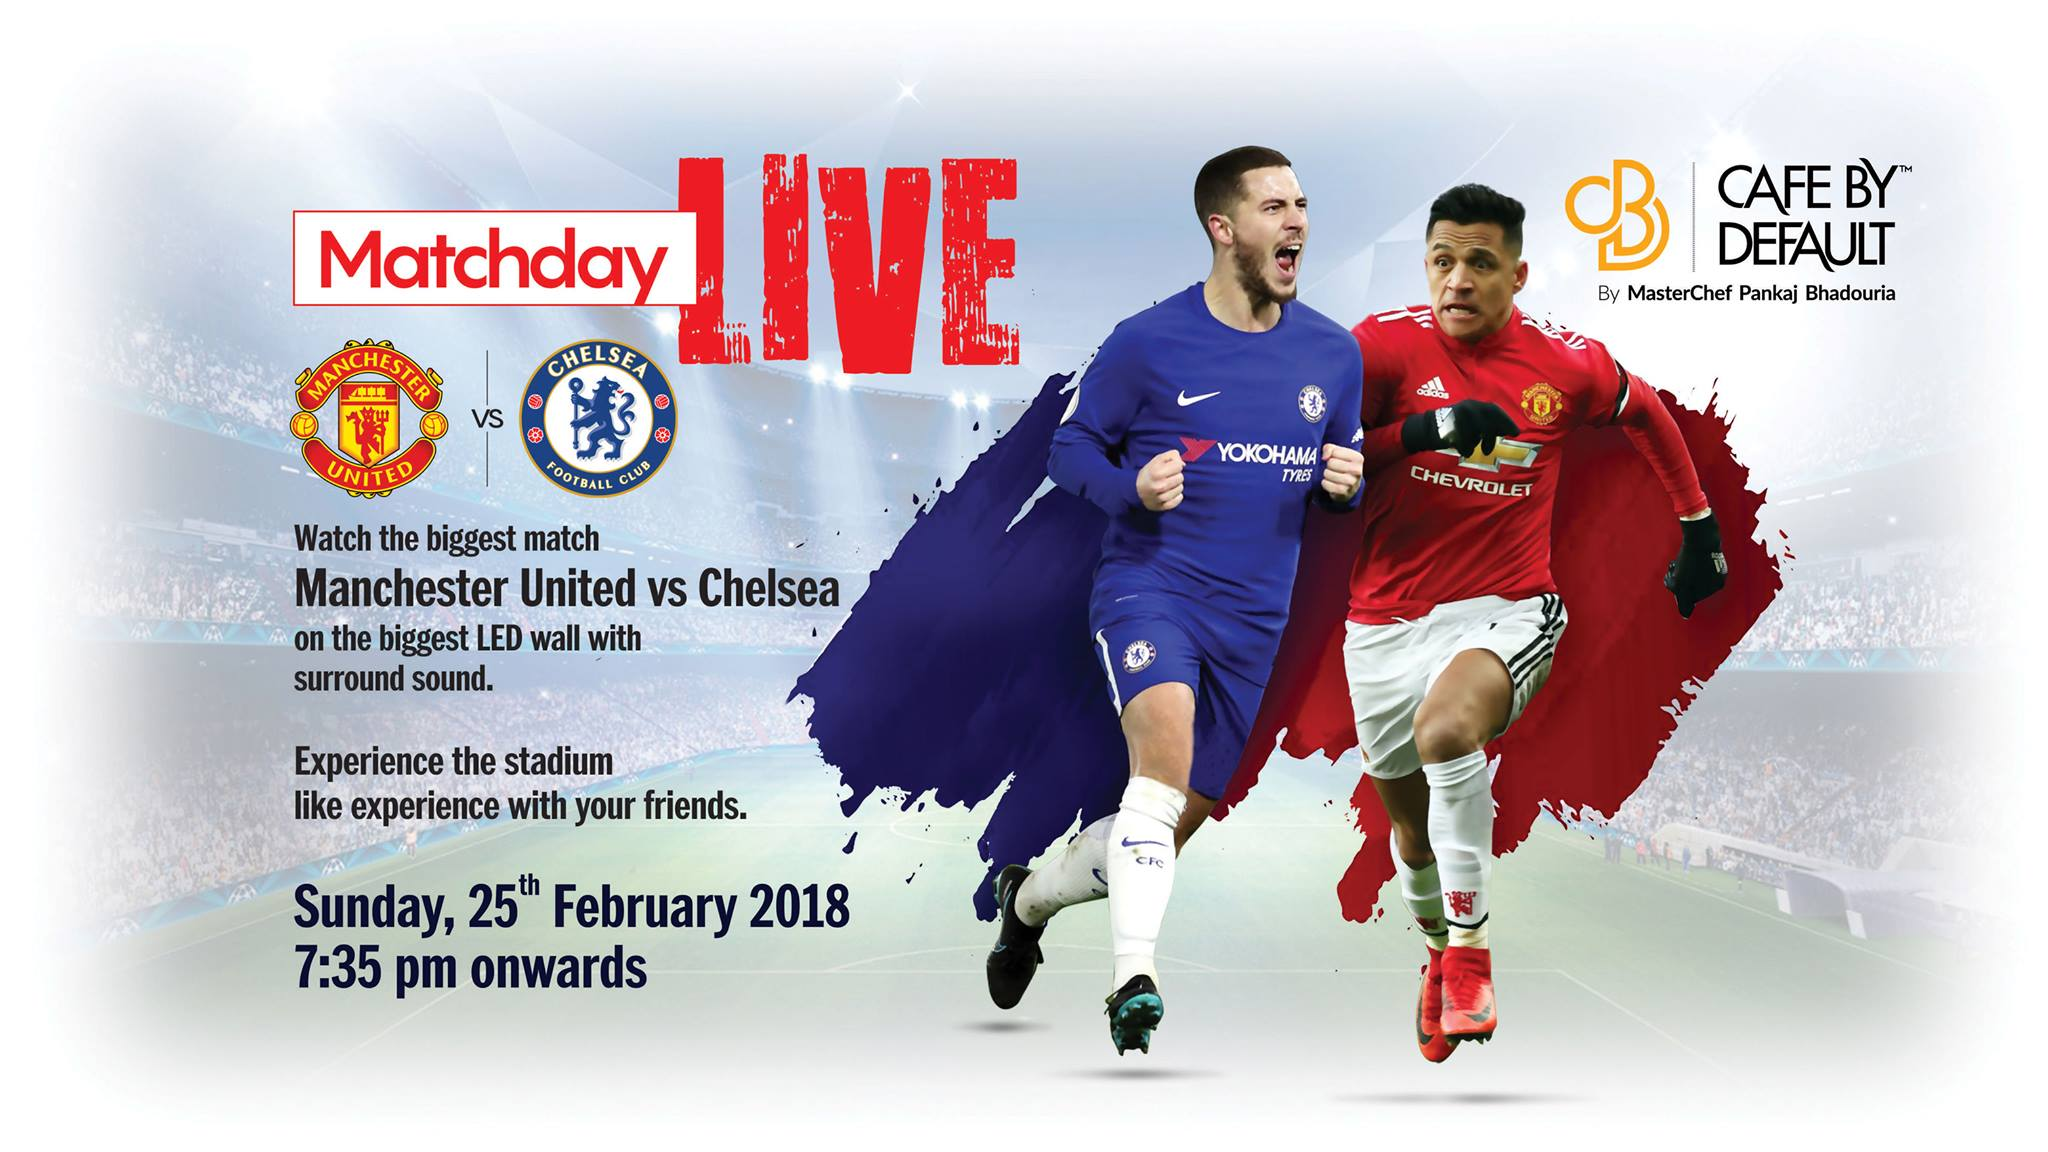 Matchday LIVE Manchester United Vs Chelsea Cafe By Default 2048x1152